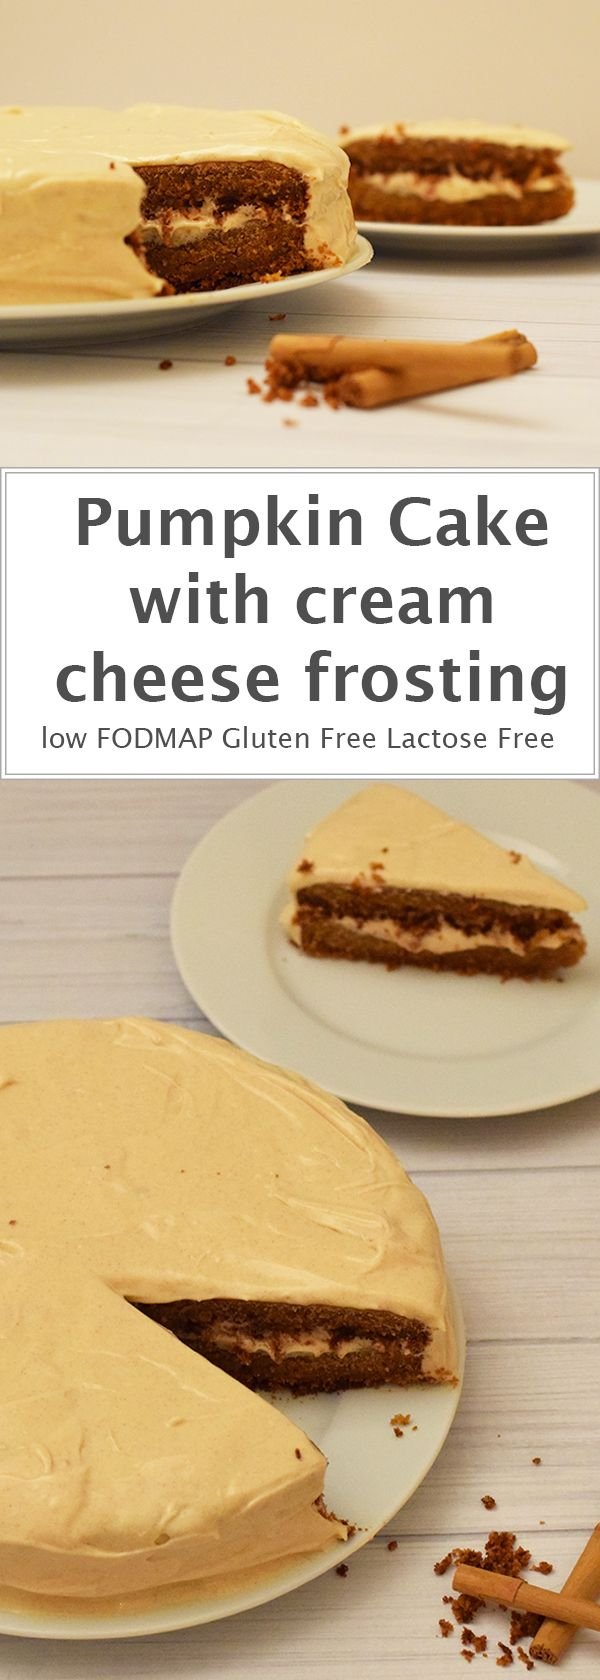 A two-layer pumpkin cake with cream cheese frosting. Low FODMAP, gluten-free and lactose-free.